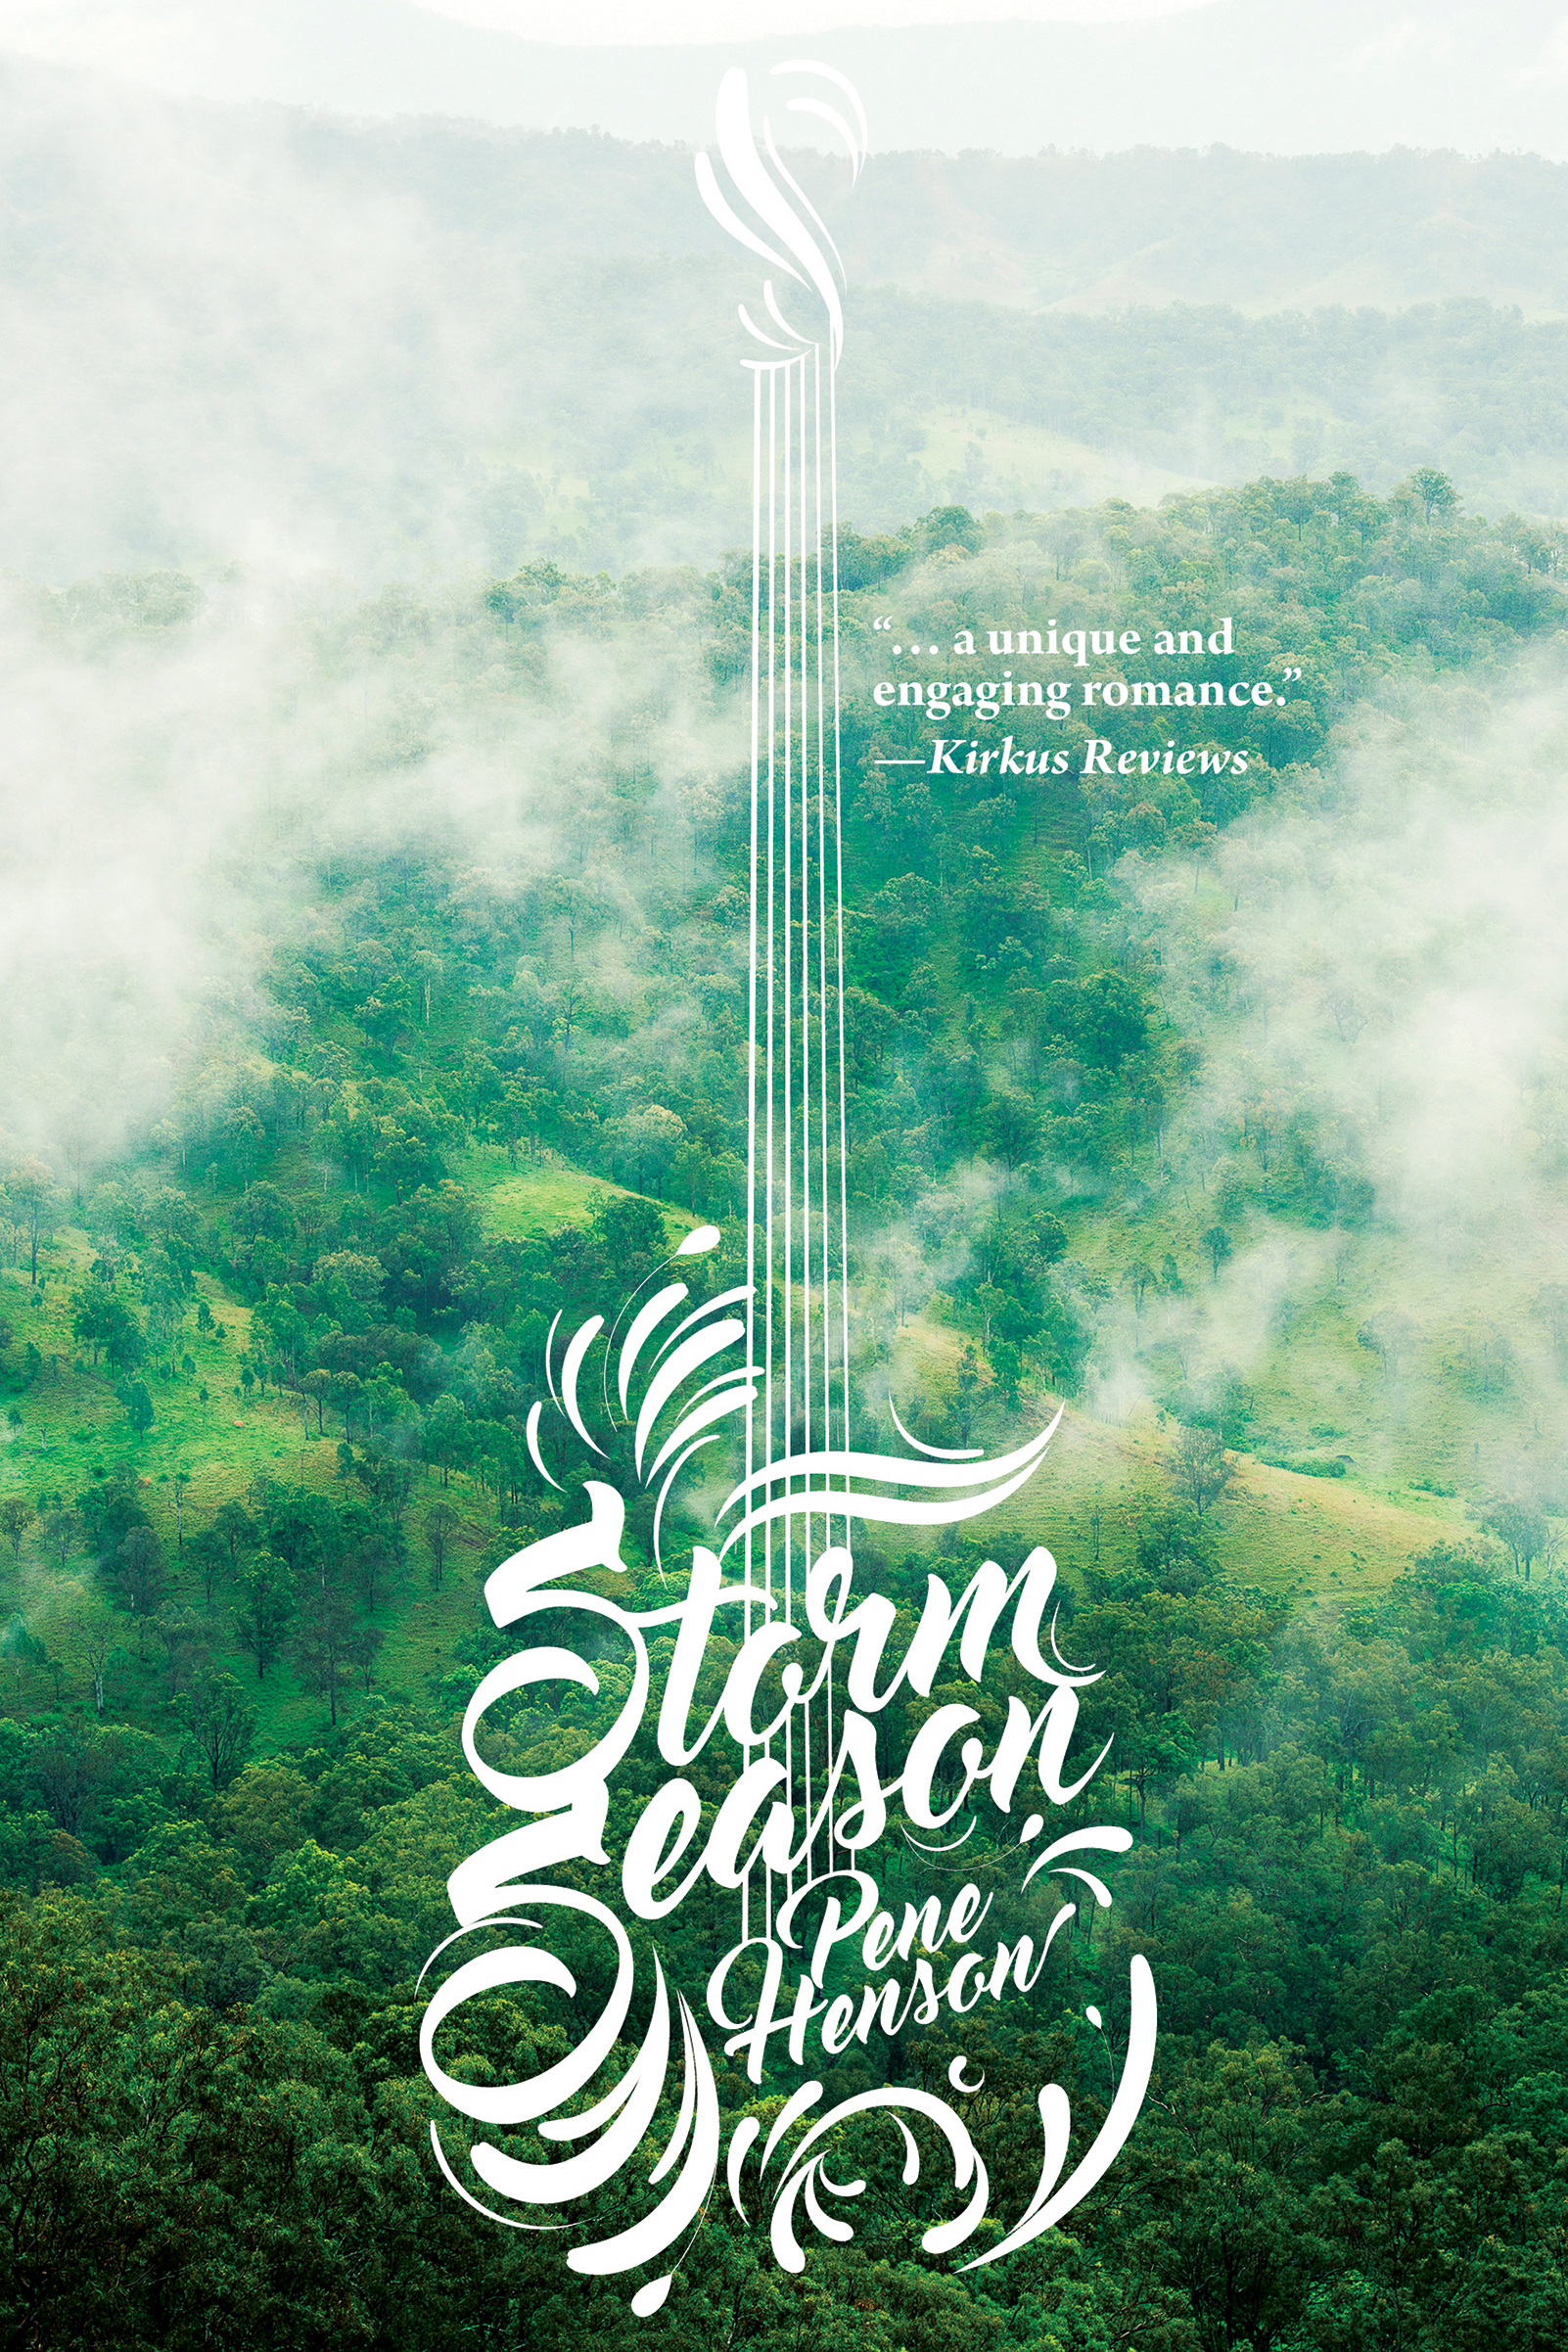 Guest Post and Giveaway: Storm Season by Pene Henson